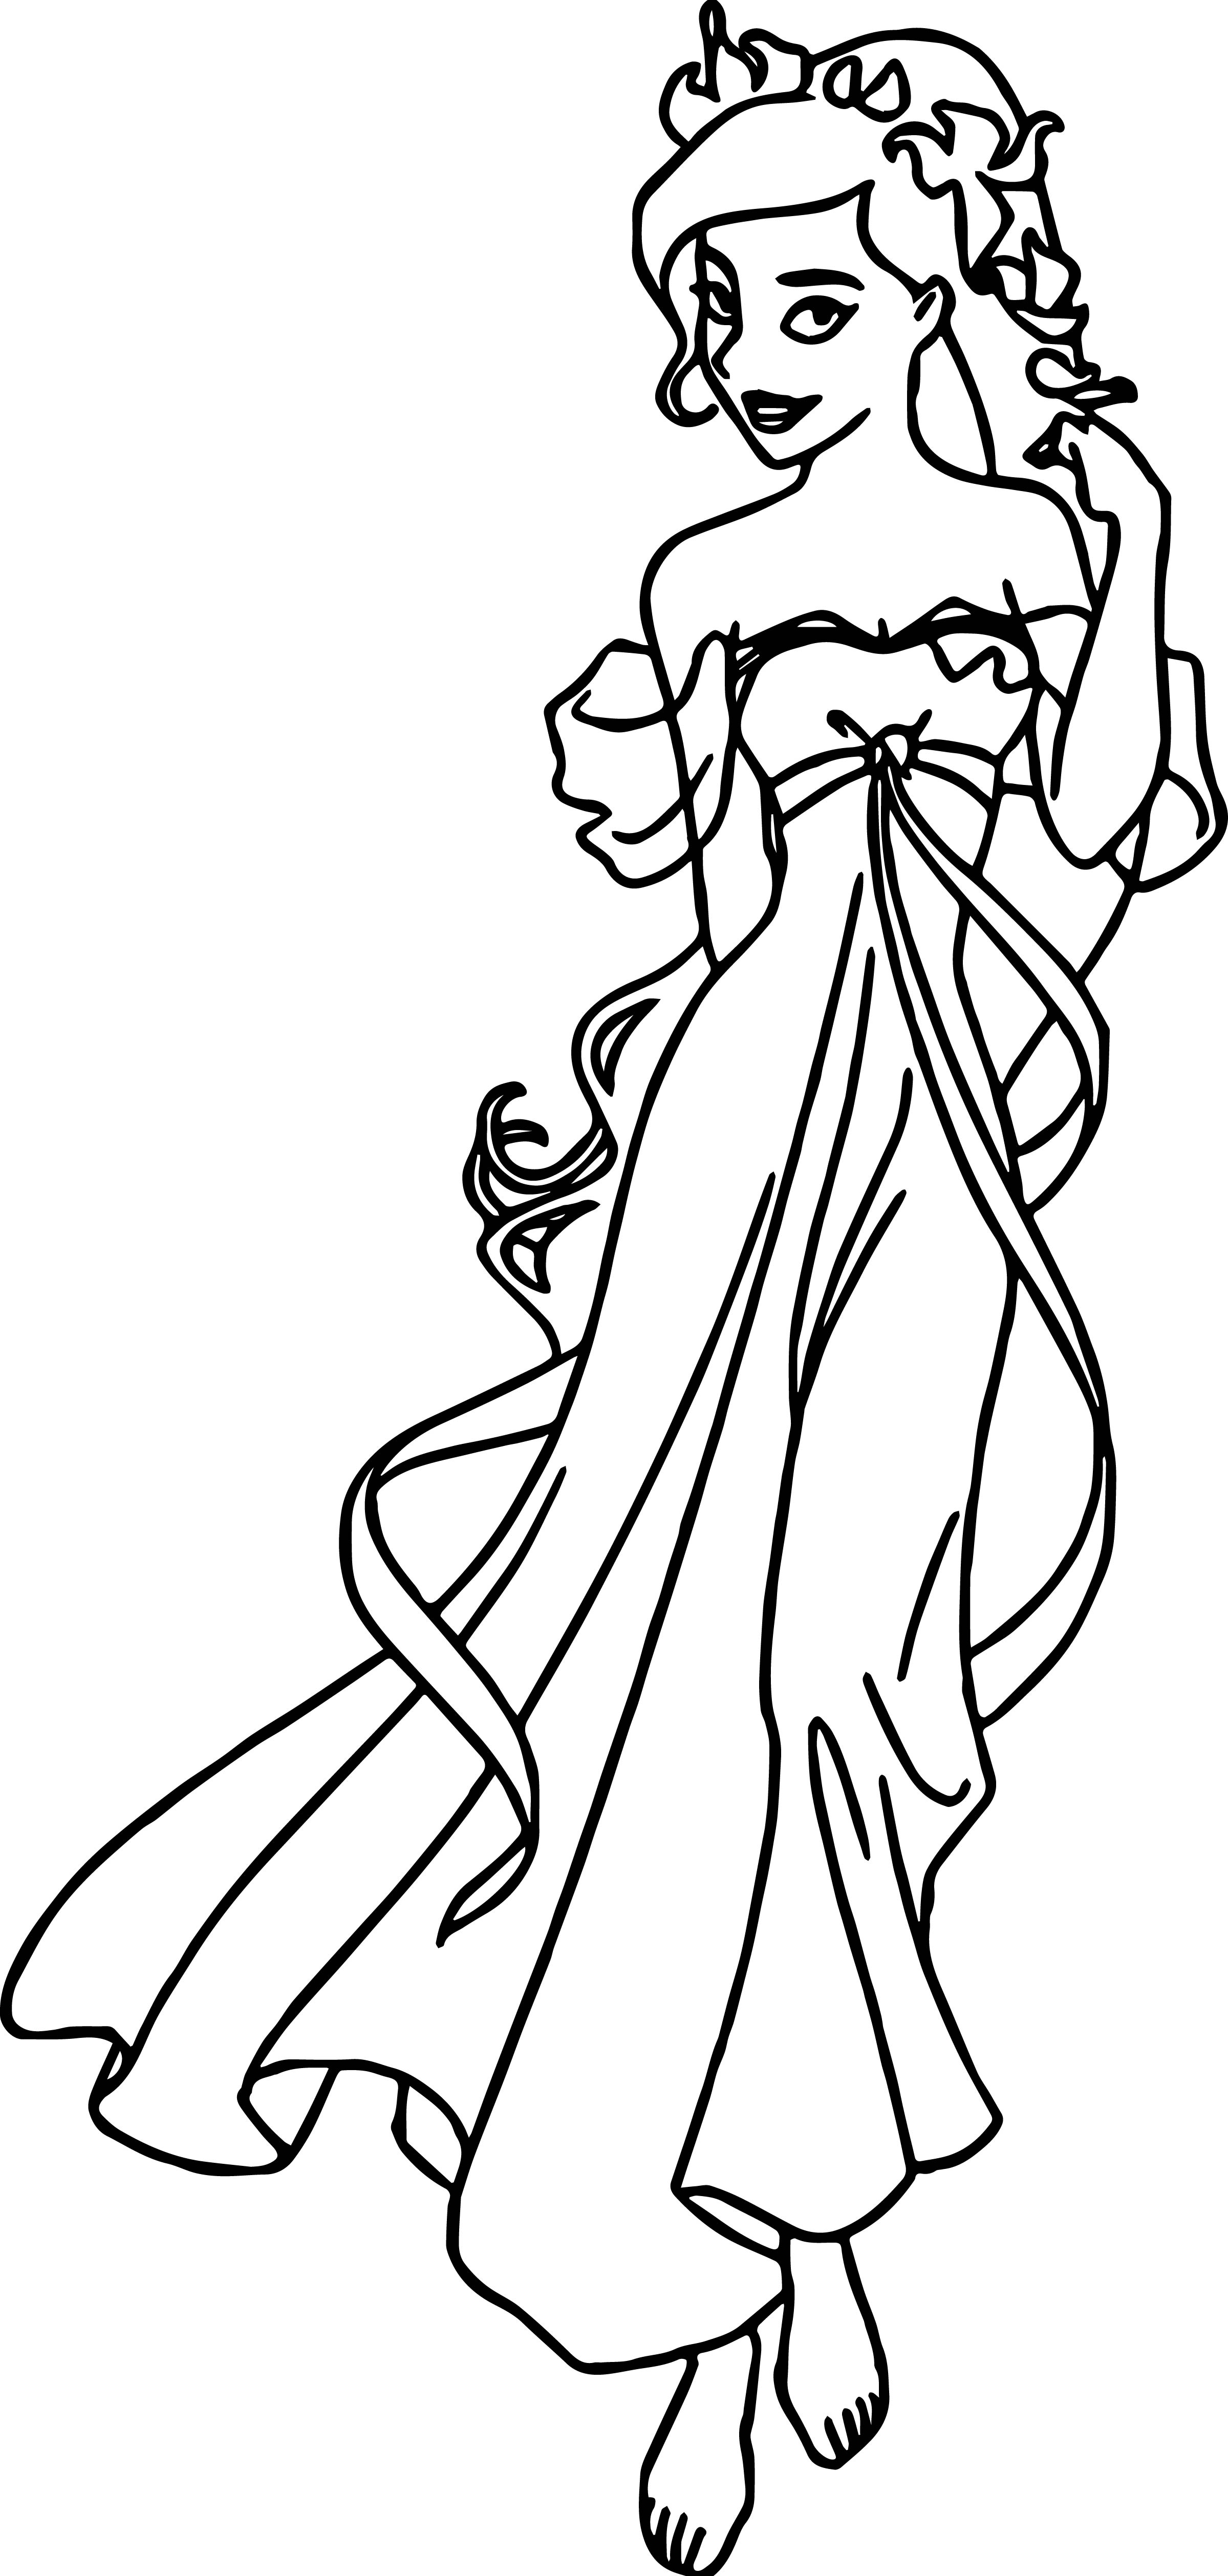 Disney Enchanted Princess Girl Walk Coloring Pages